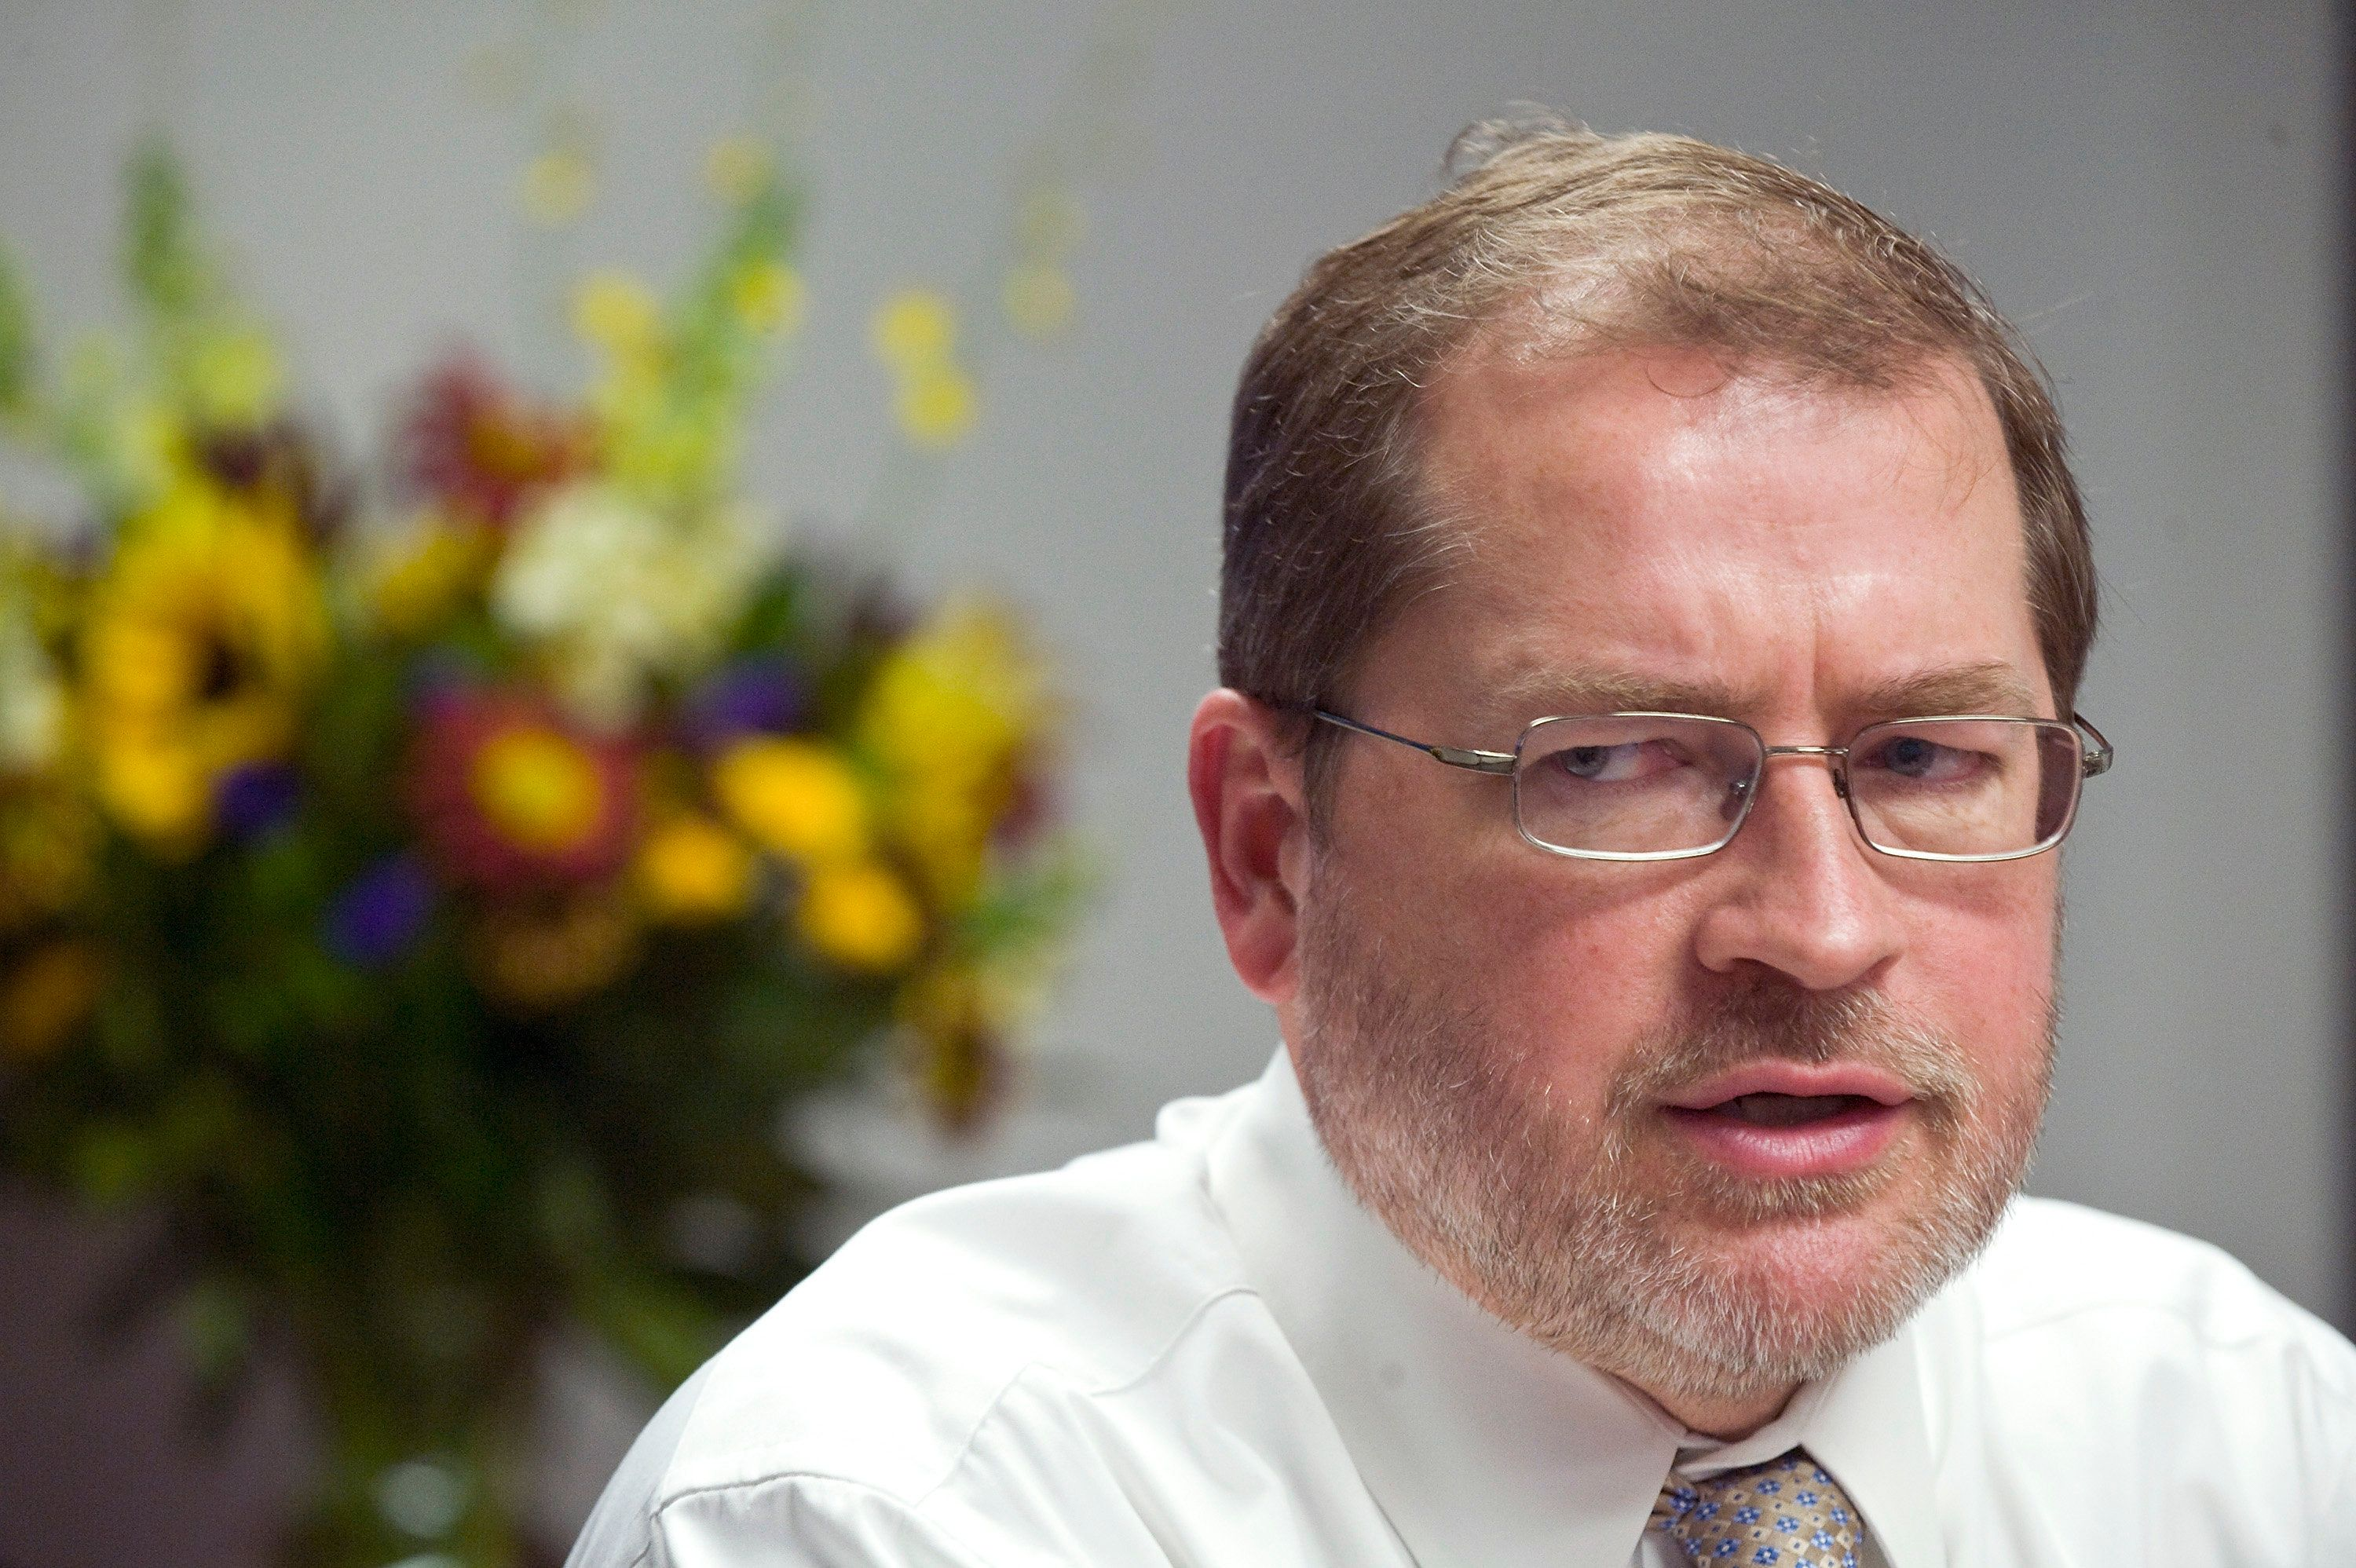 Americans for Tax Reform President Grover Norquist addresses the Reuters Washington Summit in the Reuters newsroom in Washington, November 7, 2011. REUTERS/Jonathan Ernst (UNITED STATES - Tags: POLITICS BUSINESS)